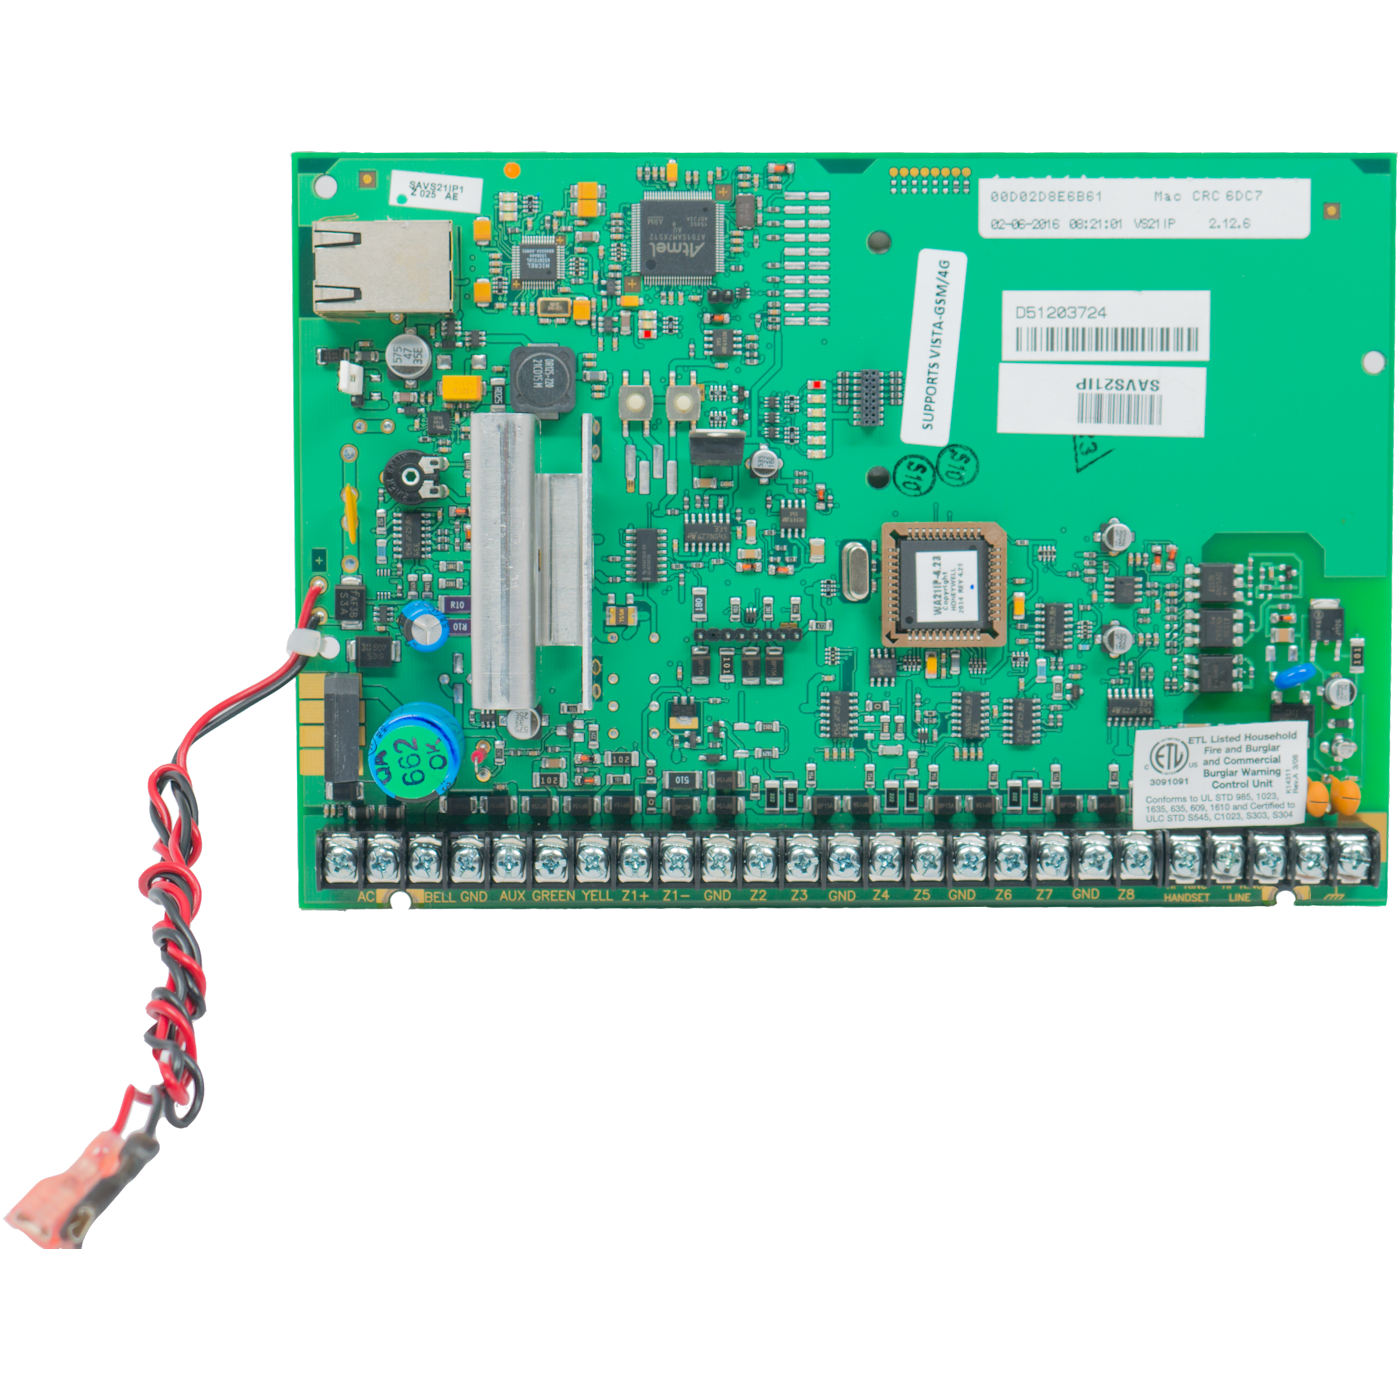 Hand Brake Alarm Module furthermore Automatic Water Level Controller Working Principle moreover Vista 21ip Honeywell Inter  Alarm Control Panel Board Only furthermore How Long Does An Ansul Fire System Service Take together with Dsc Maxsys Control Panel Pc4020. on alarm panel wiring